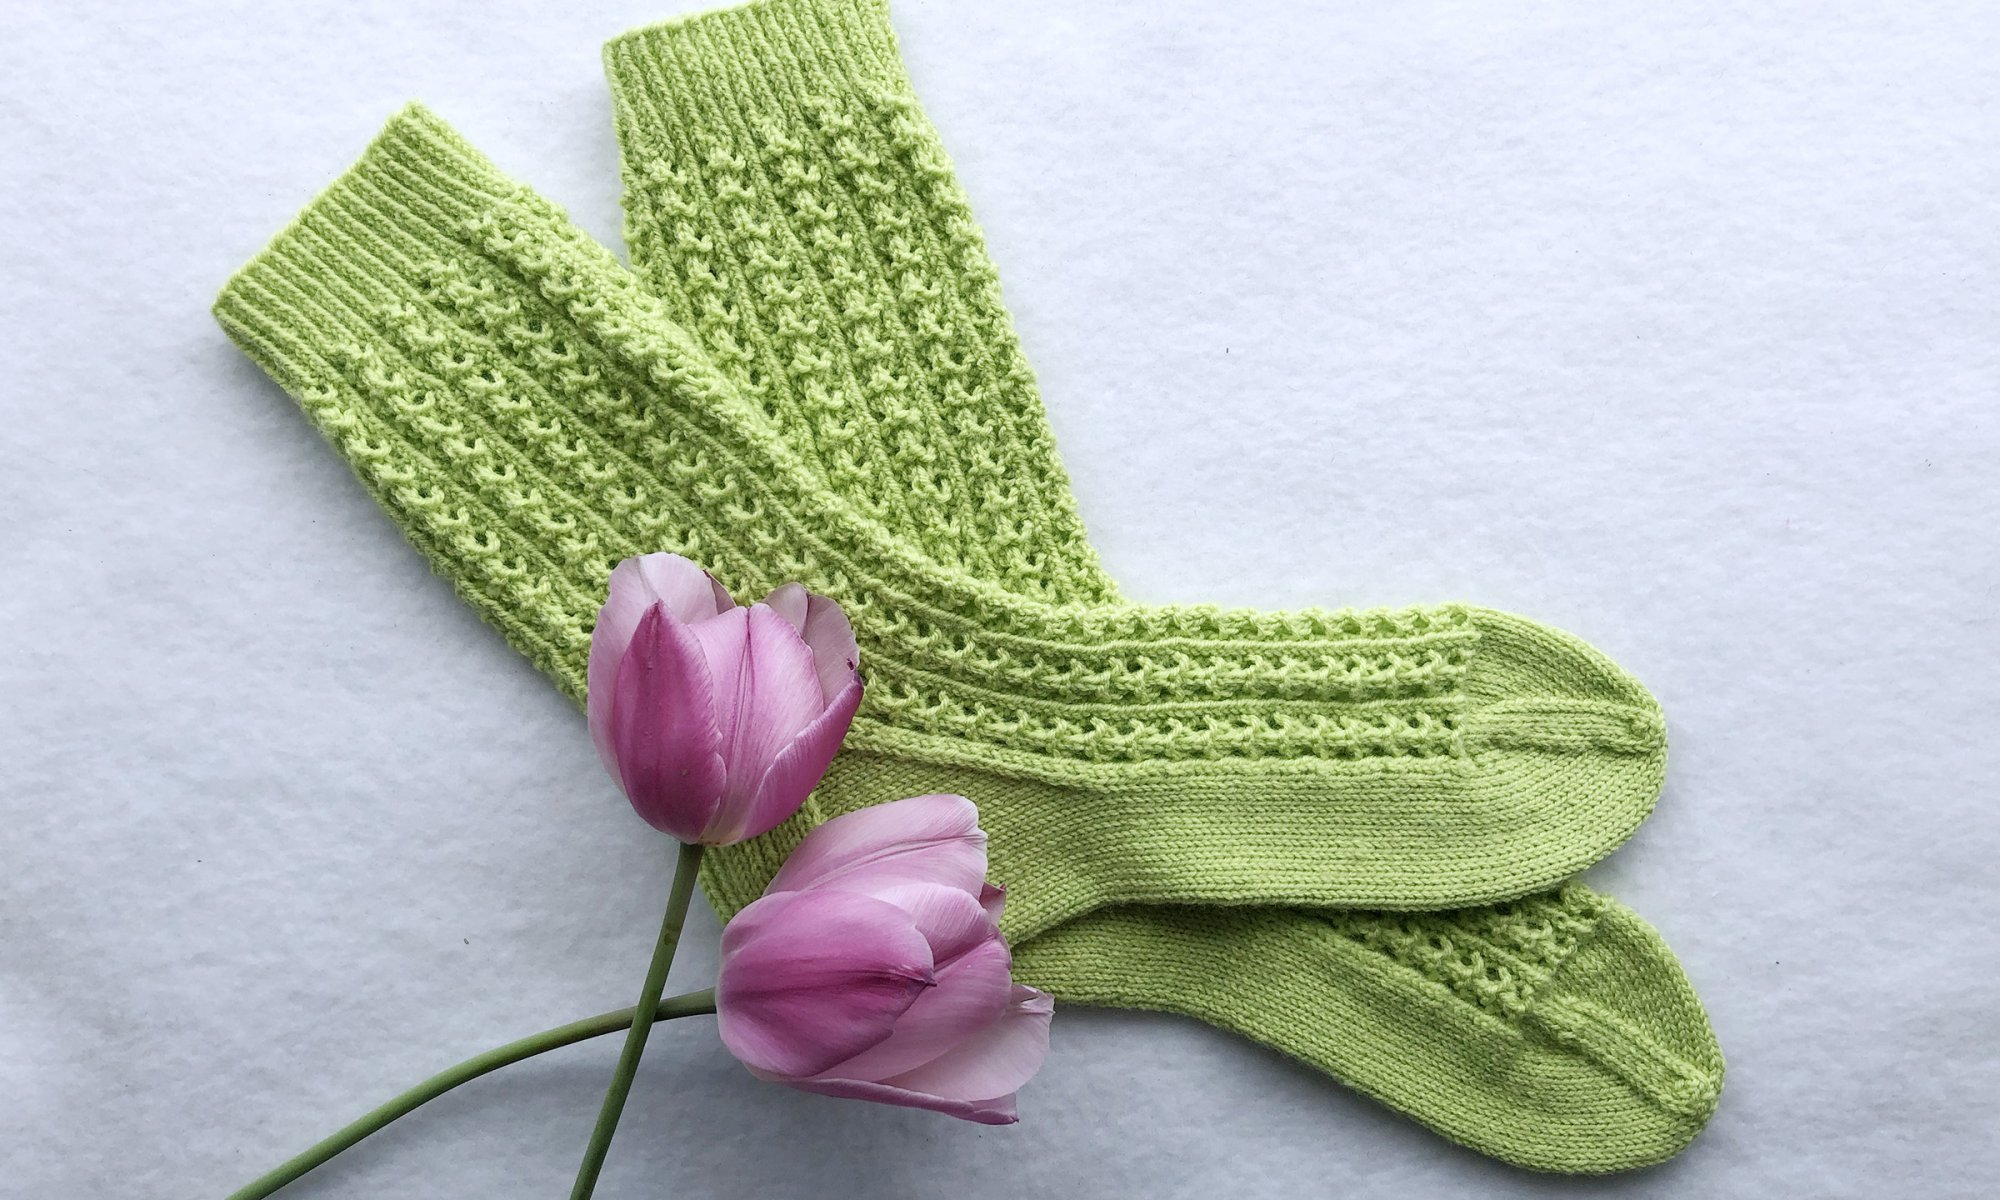 Primavera Lace Socks Knitting Pattern designed by Edie Eckman